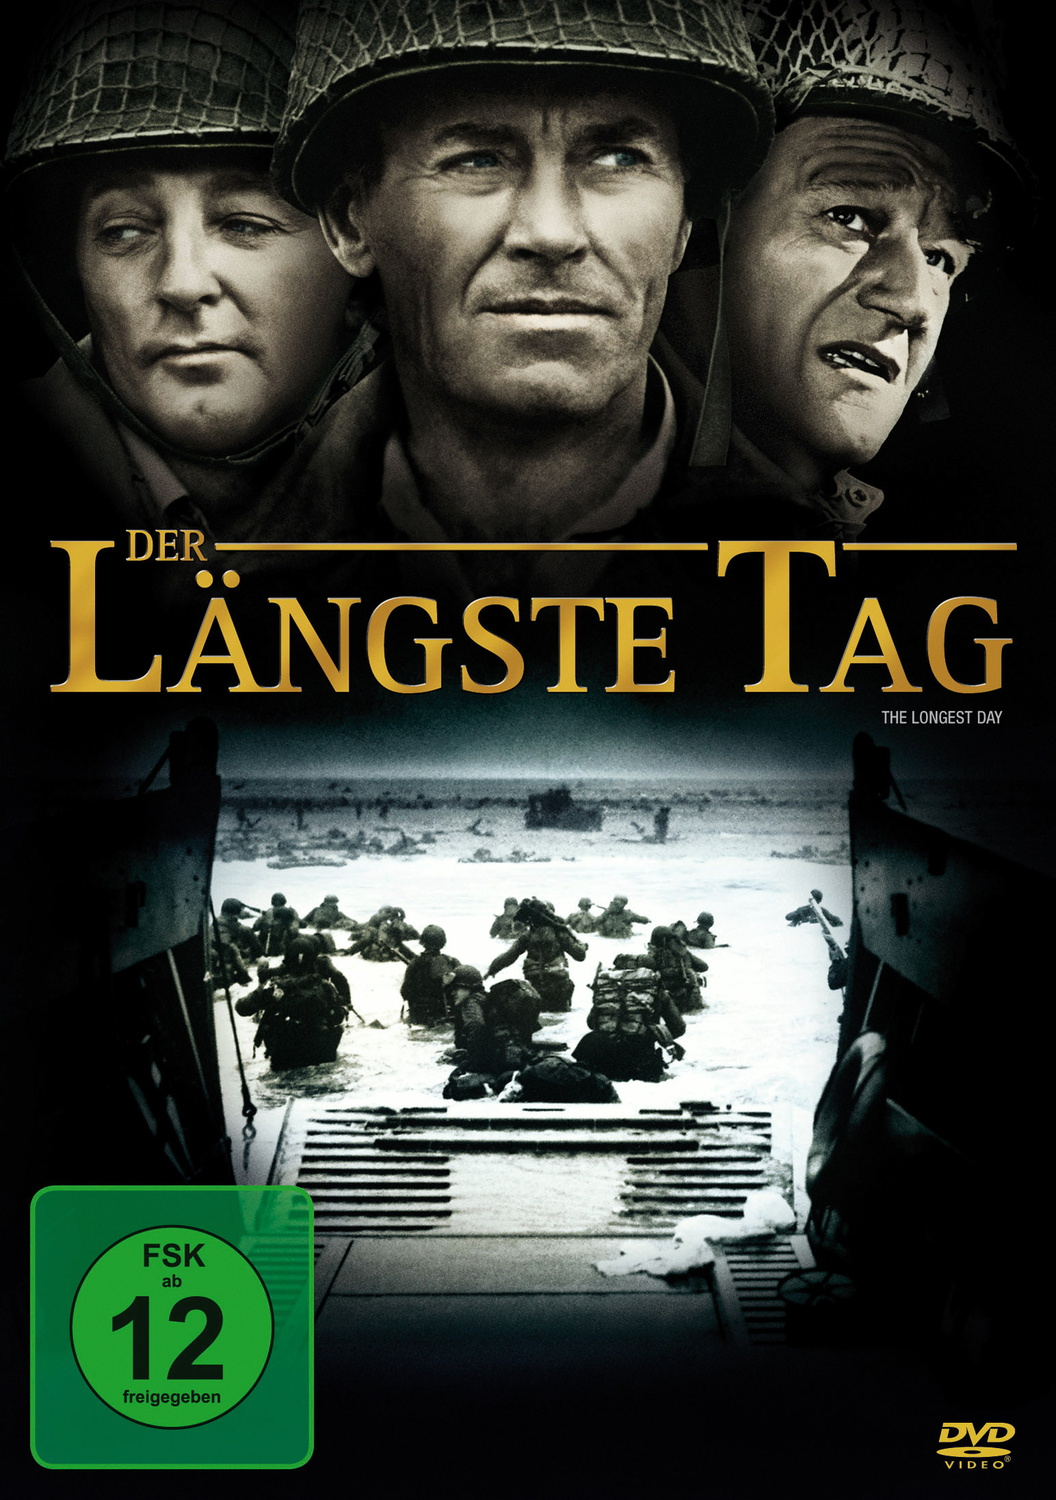 Der längste Tag [Single Disc Hollywood Collection]